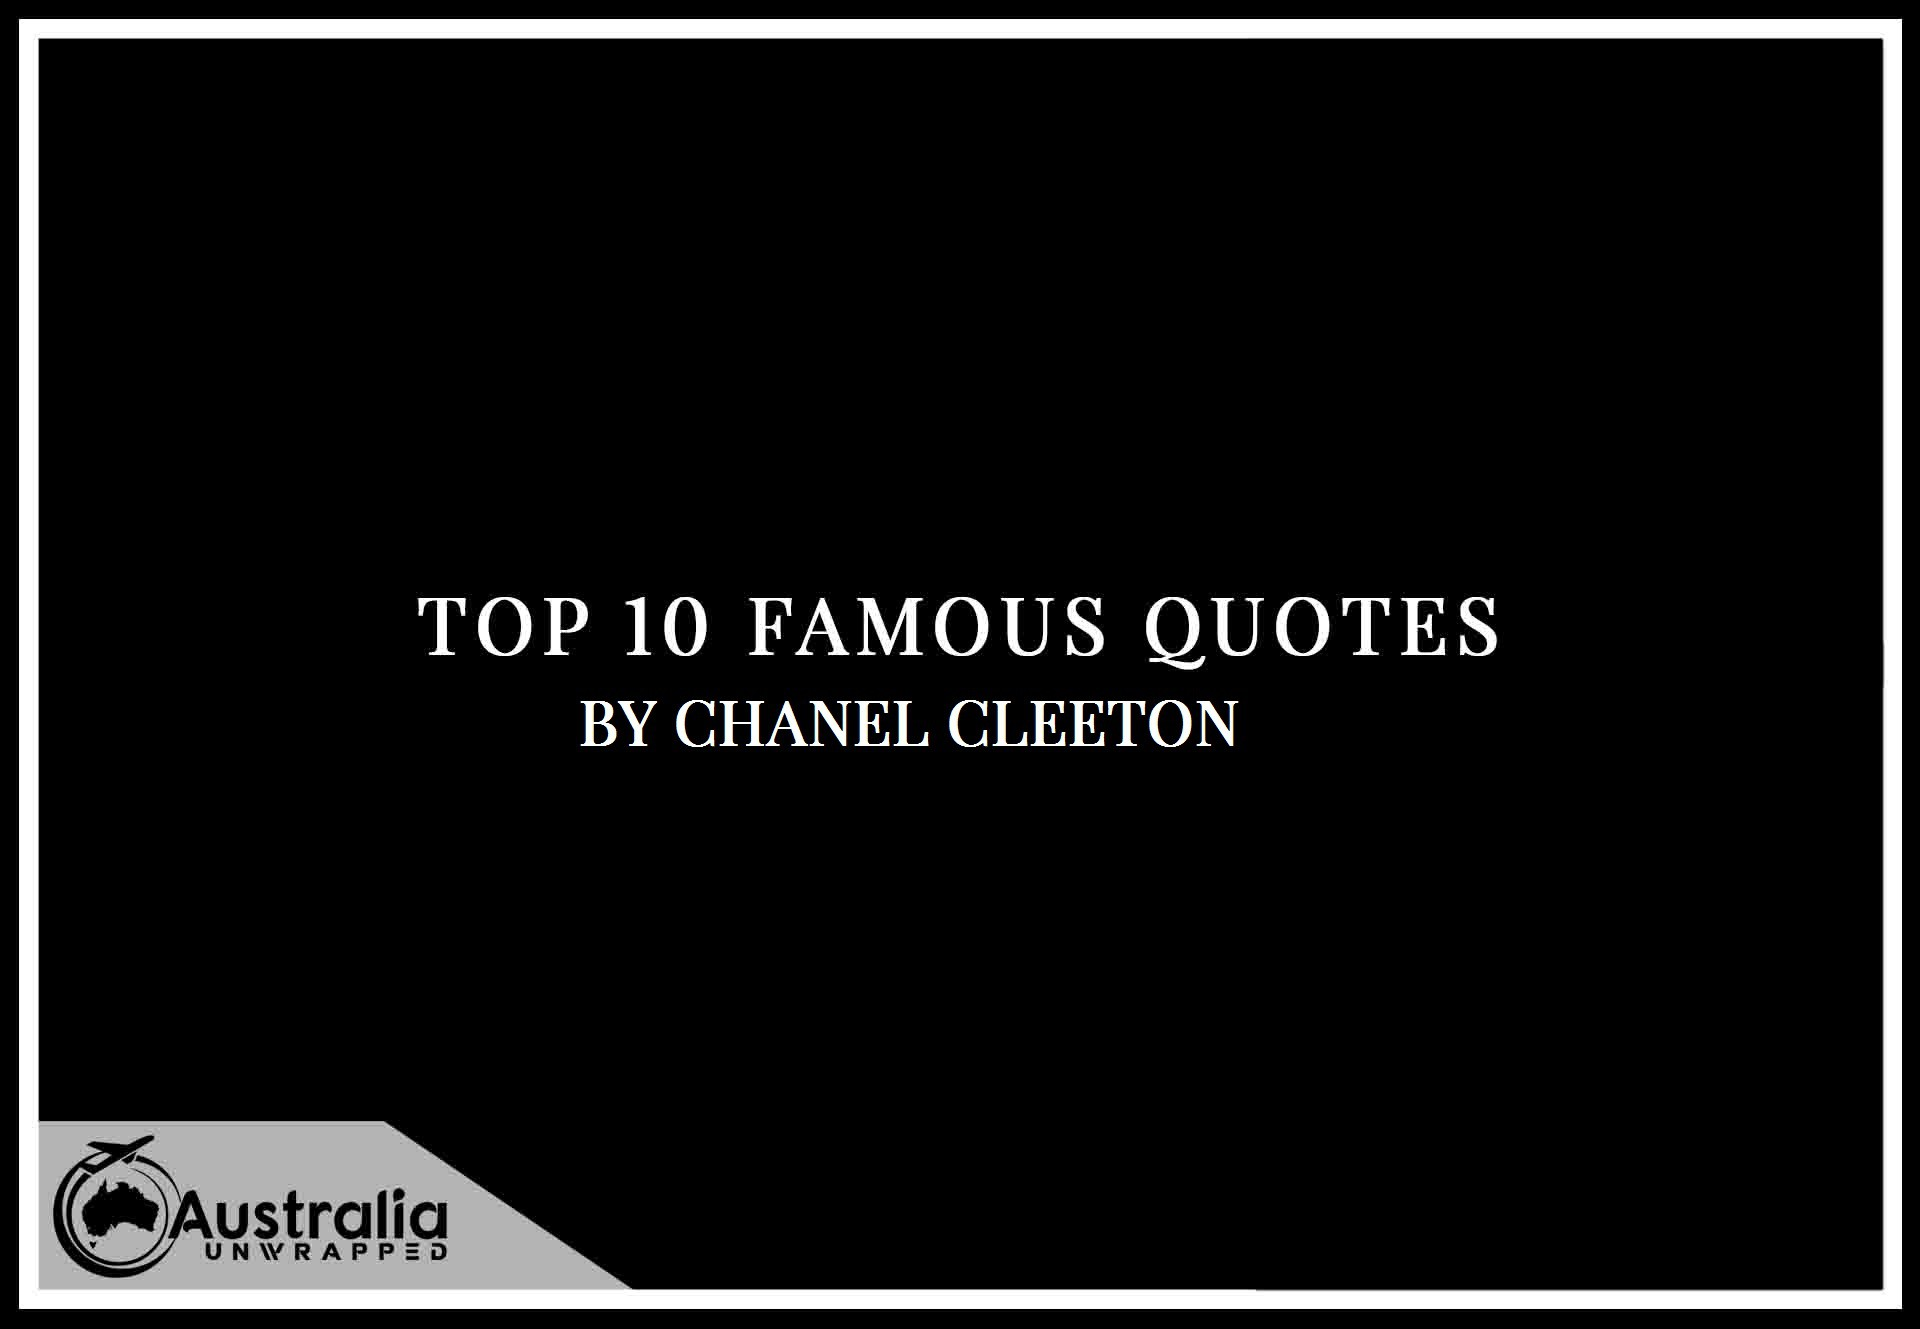 Chanel Cleeton's Top 10 Popular and Famous Quotes